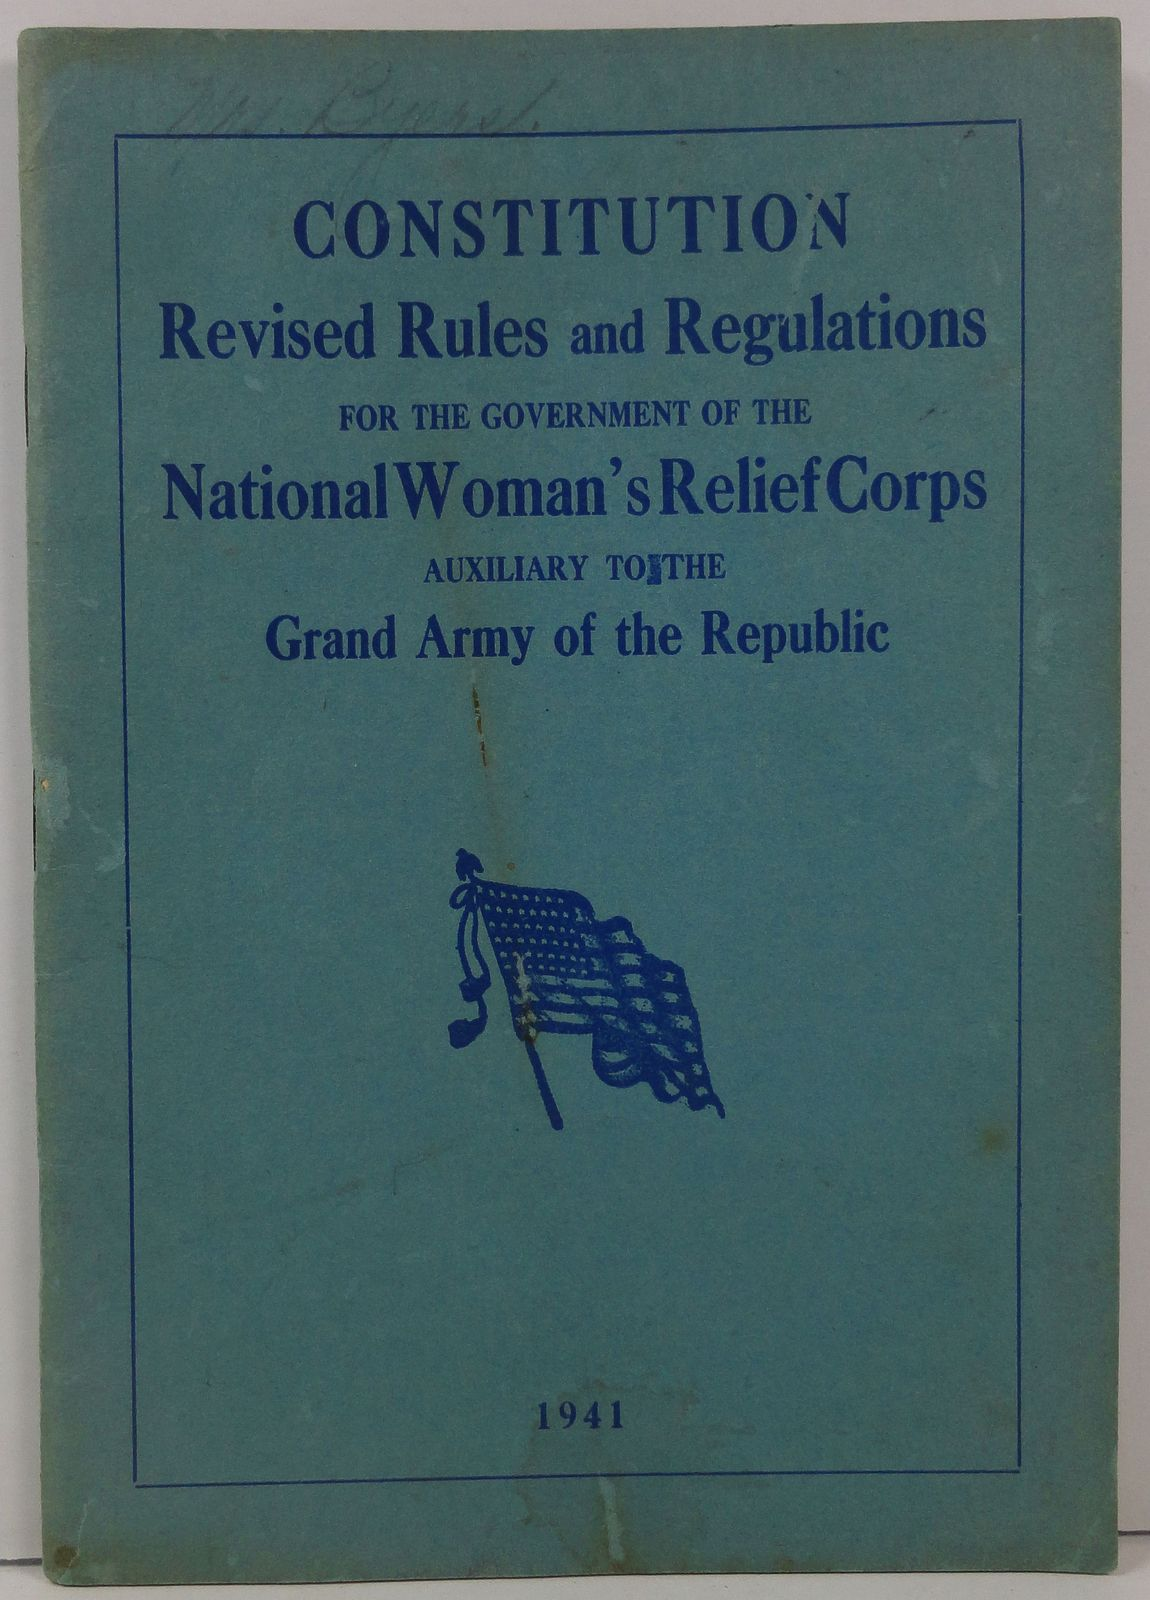 Primary image for Constitution for the Government of National Woman's Relief Corps